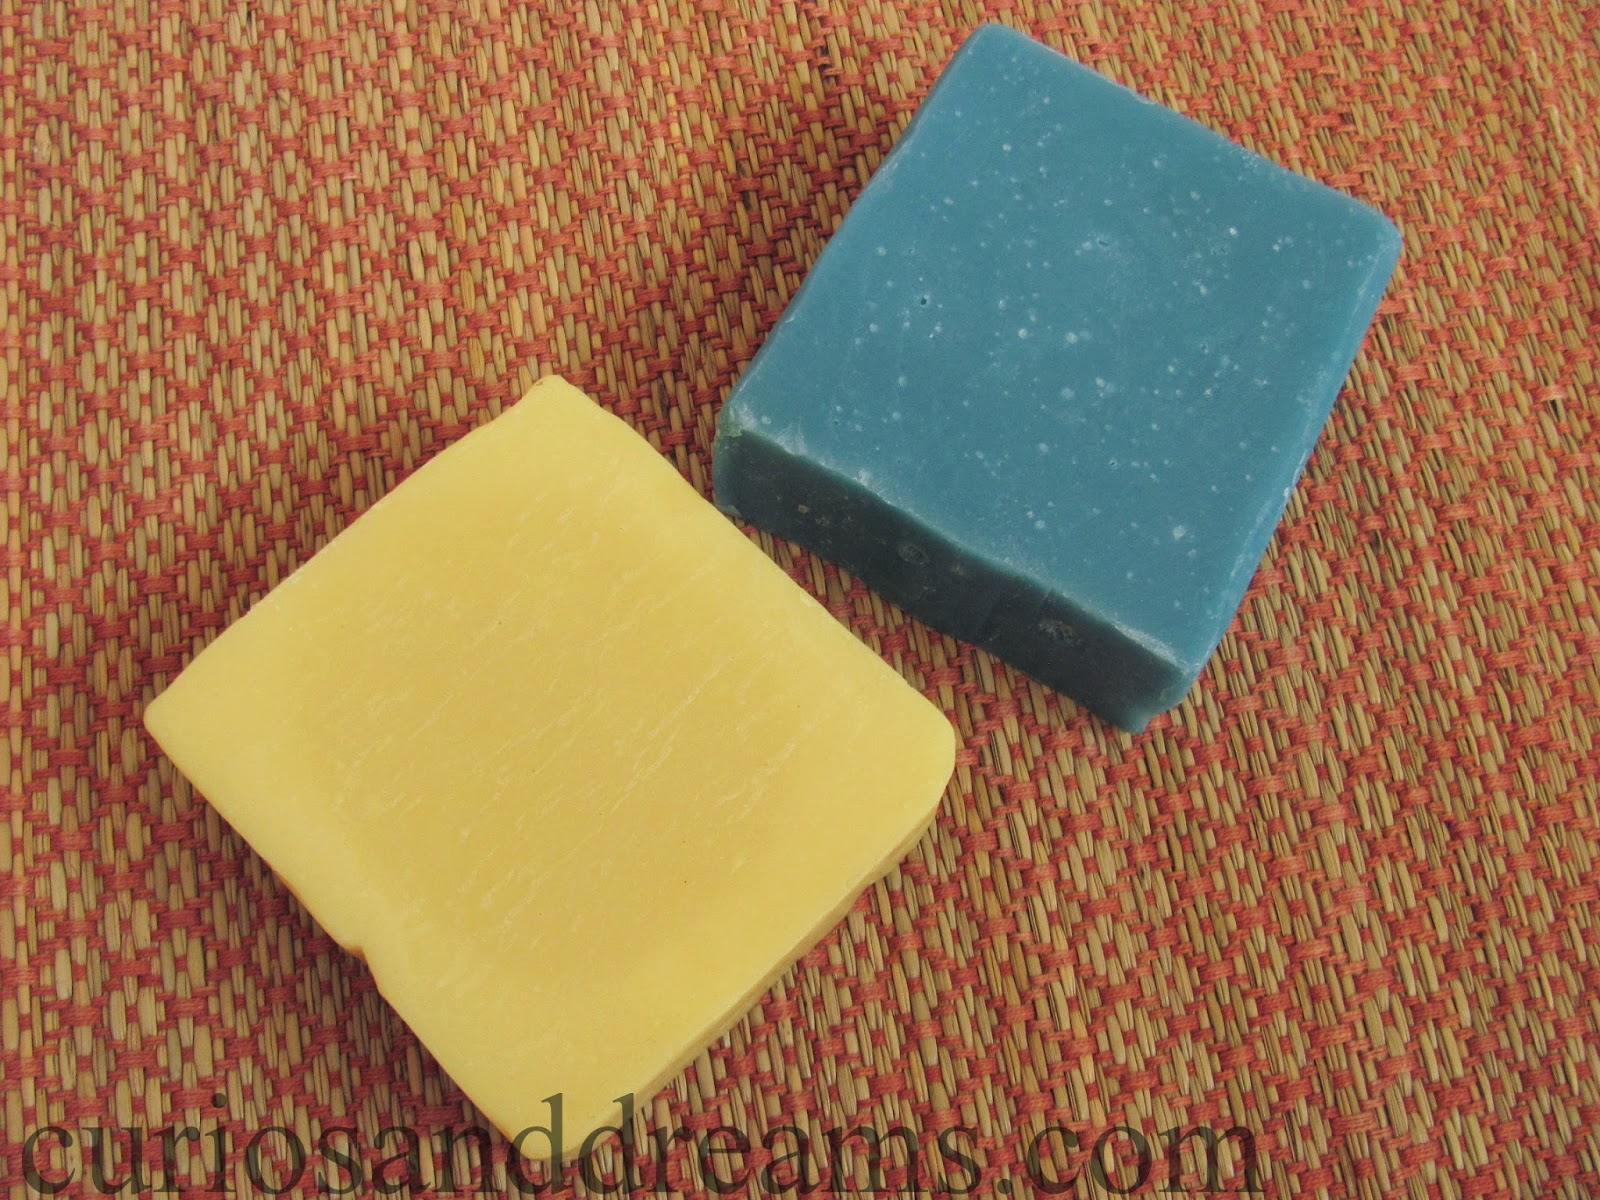 Lilac soap review, lilac soaps